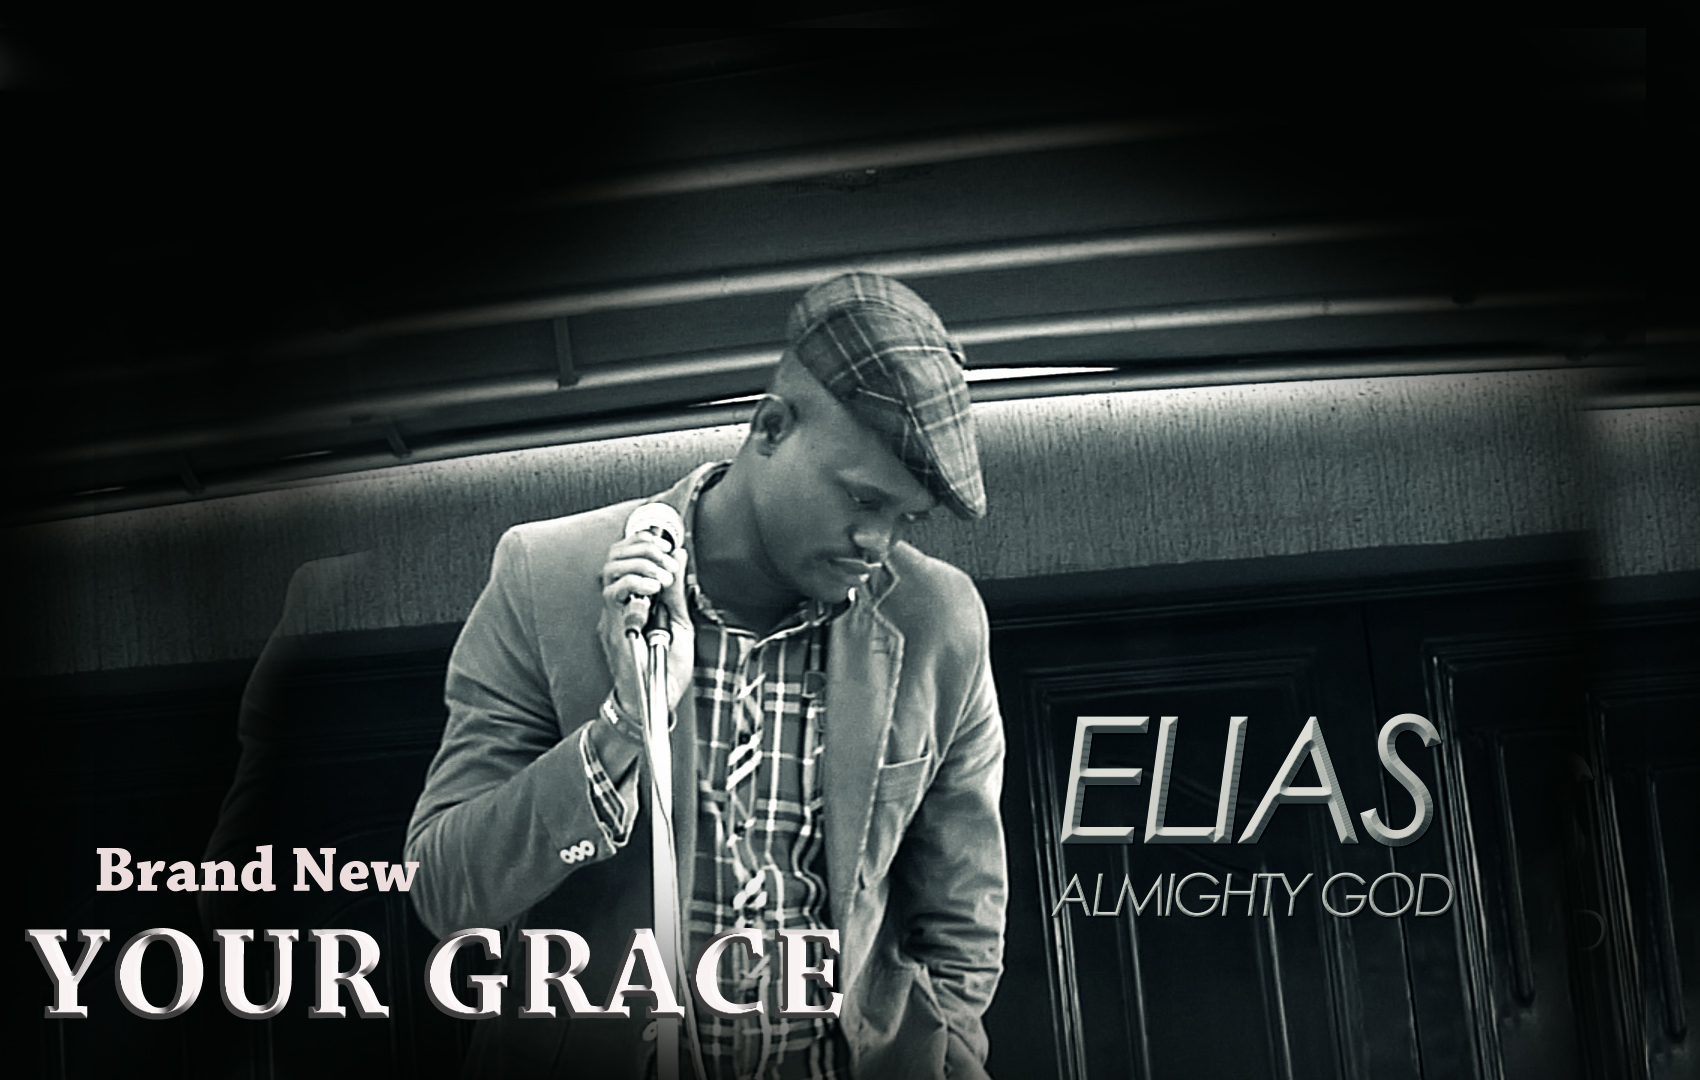 Elias - YOUR GRACE Artwork | AceWorldTeam.com